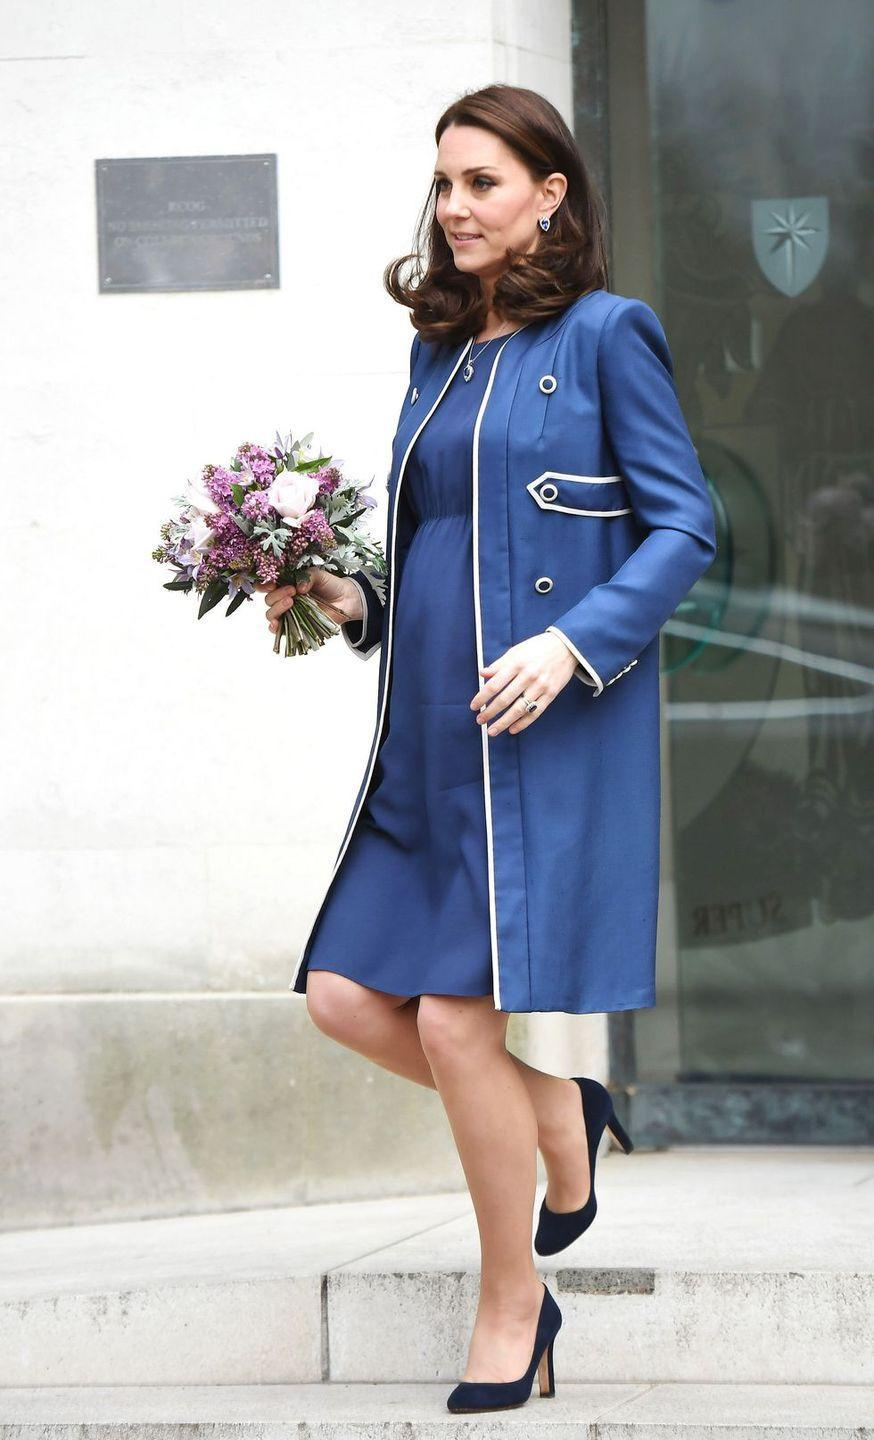 <p>In a lined Jenny Packham blue coat and dress and Jimmy Choo navy heels while visiting the Royal College of Obstetricians and Gynaecologists in London.</p>